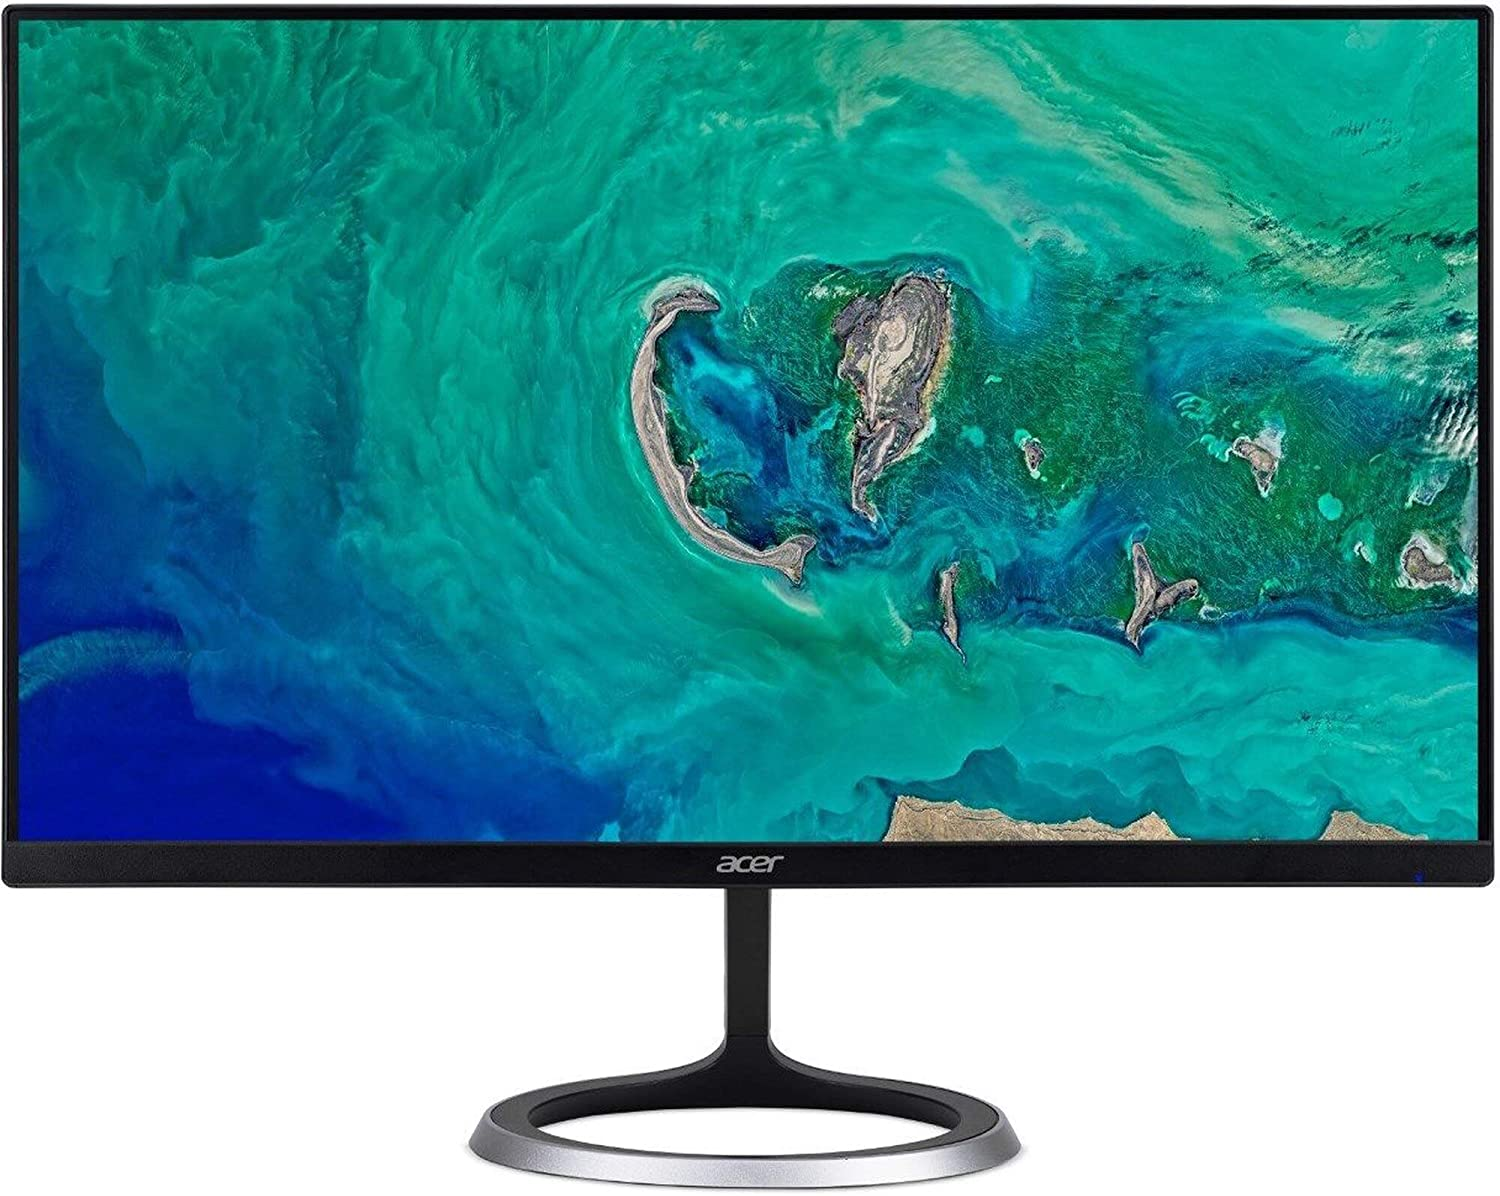 Acer ED246Y 23.8-Inch HDMI VGA (1920 x 1080) Widescreen Monitor, Black